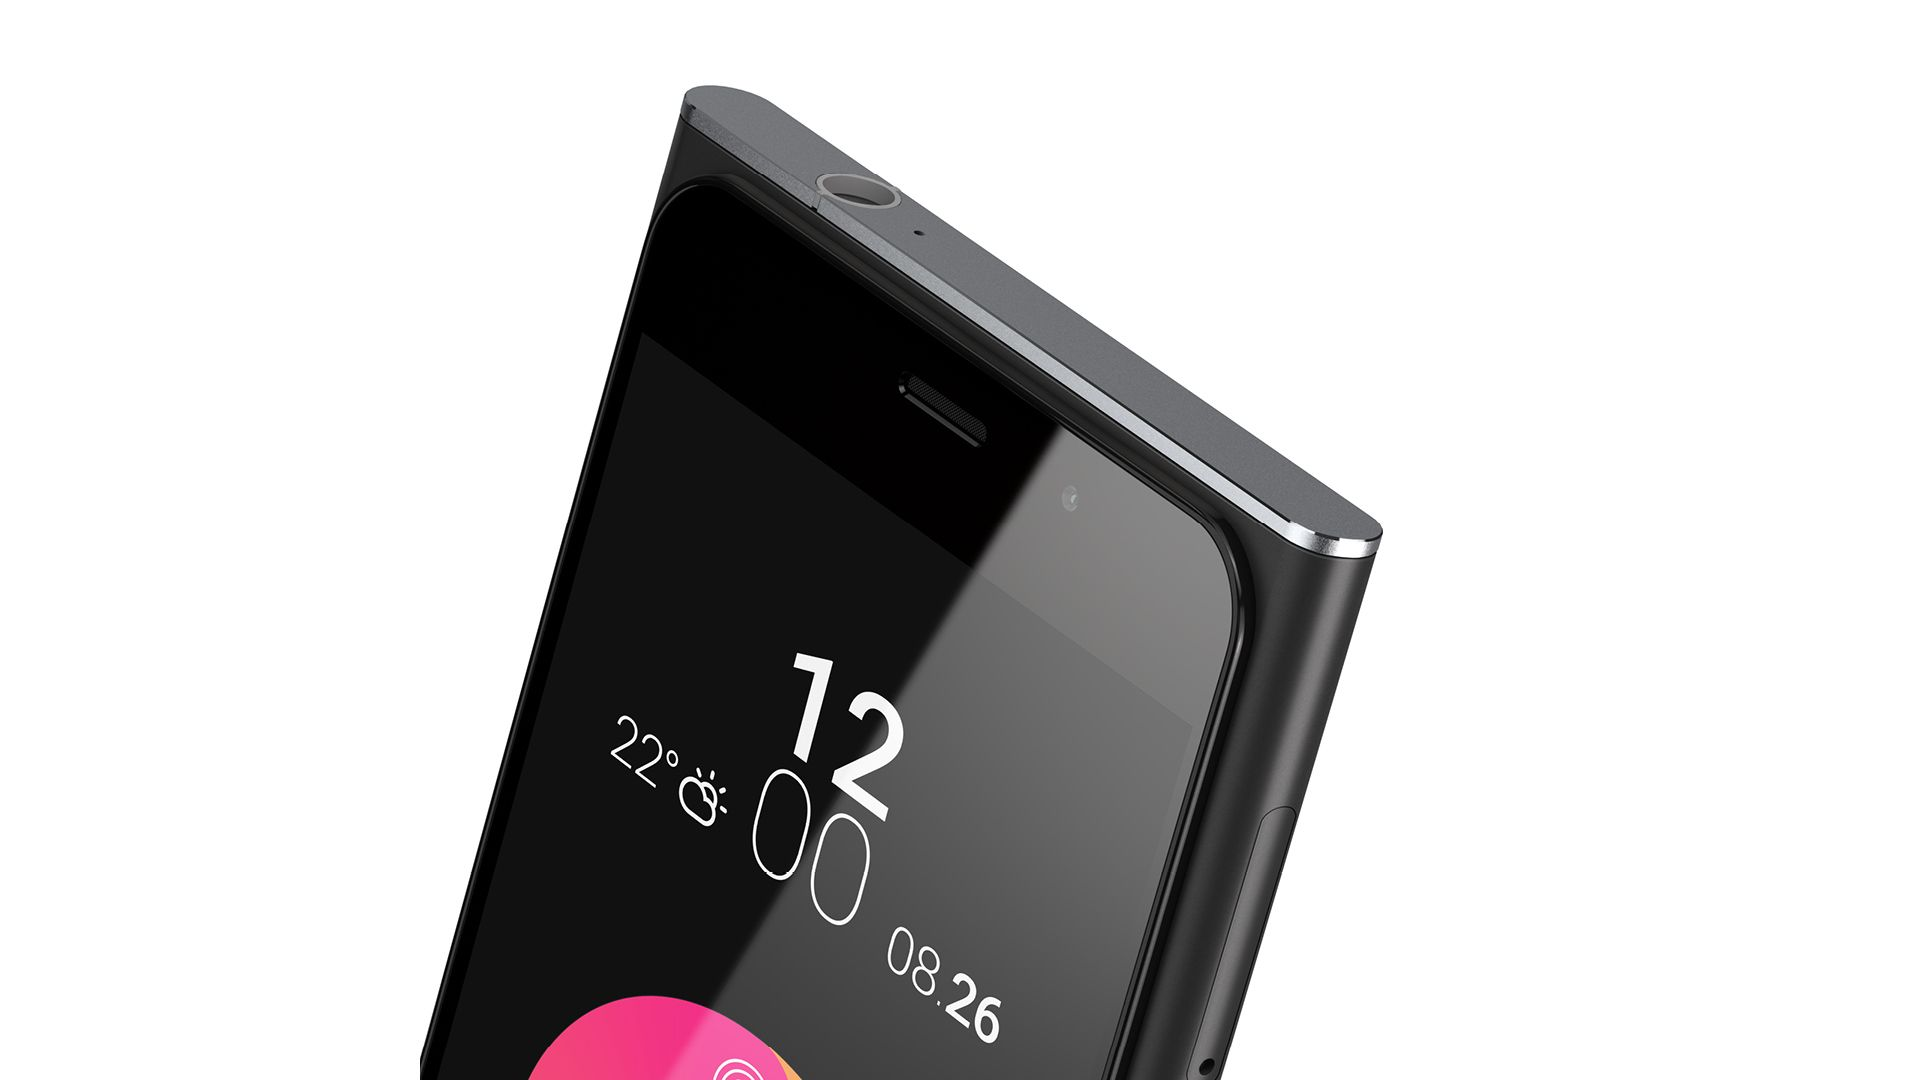 Obi Worldphone SF1 Launched In India At 180 (With images